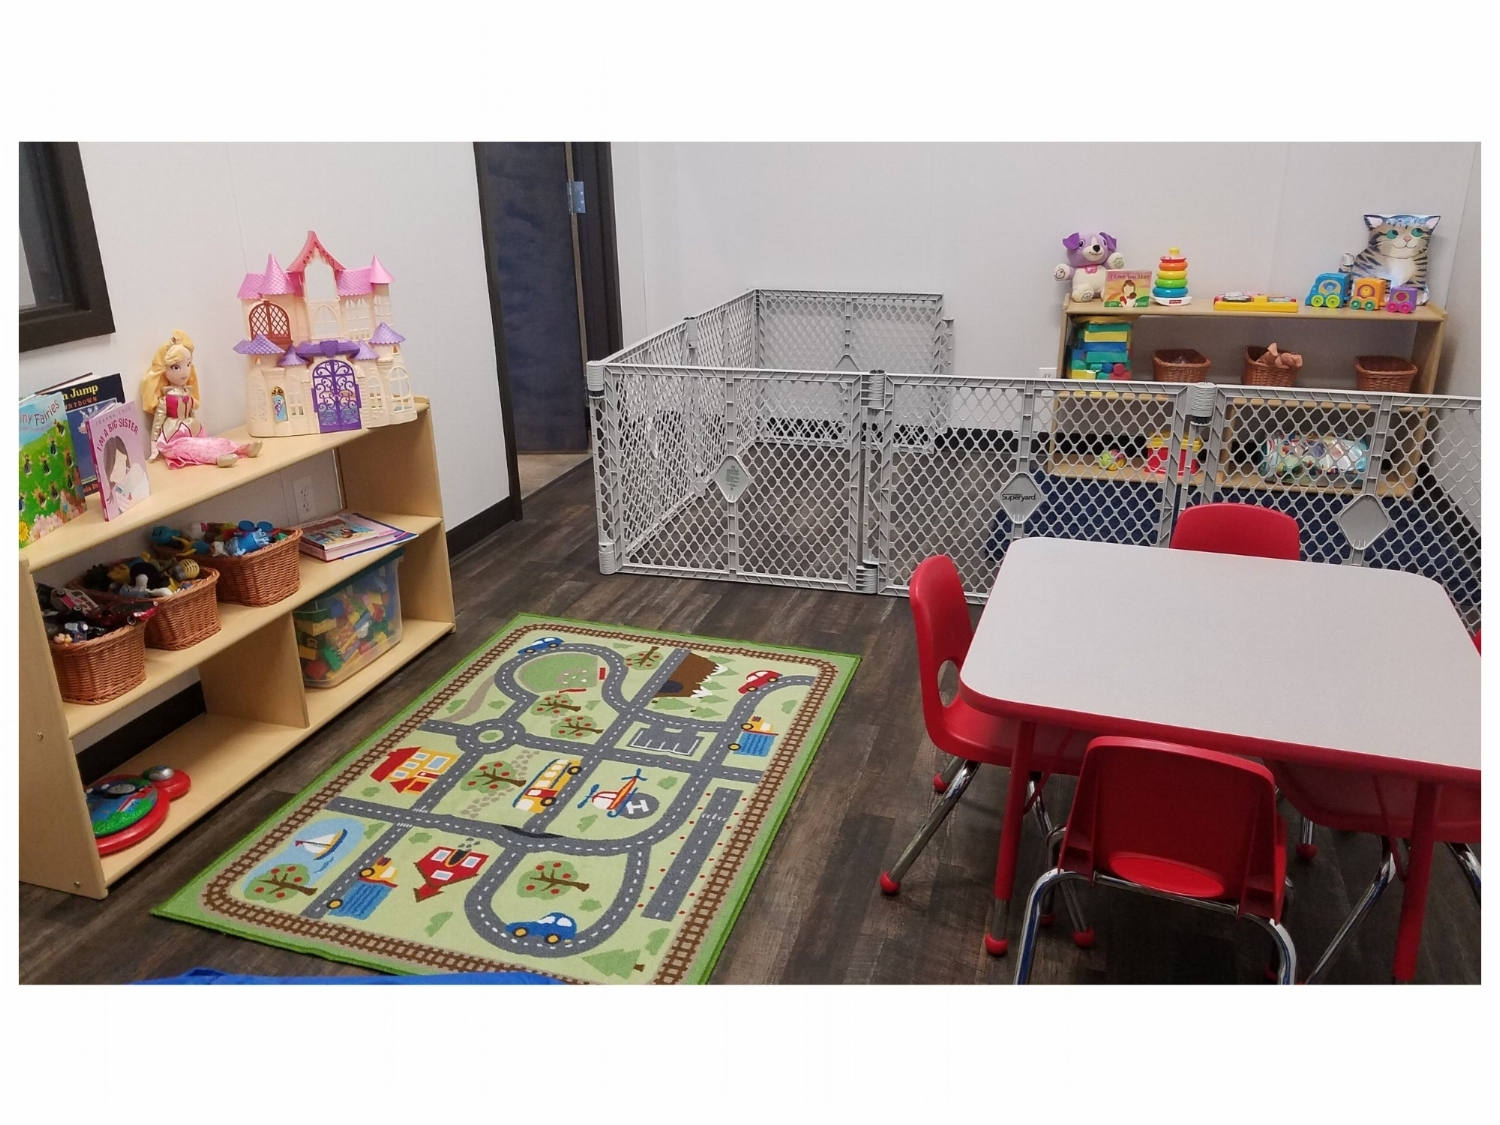 Elevates Child Watch room has age appropriate toys for children ages 6 most to 11 years old.